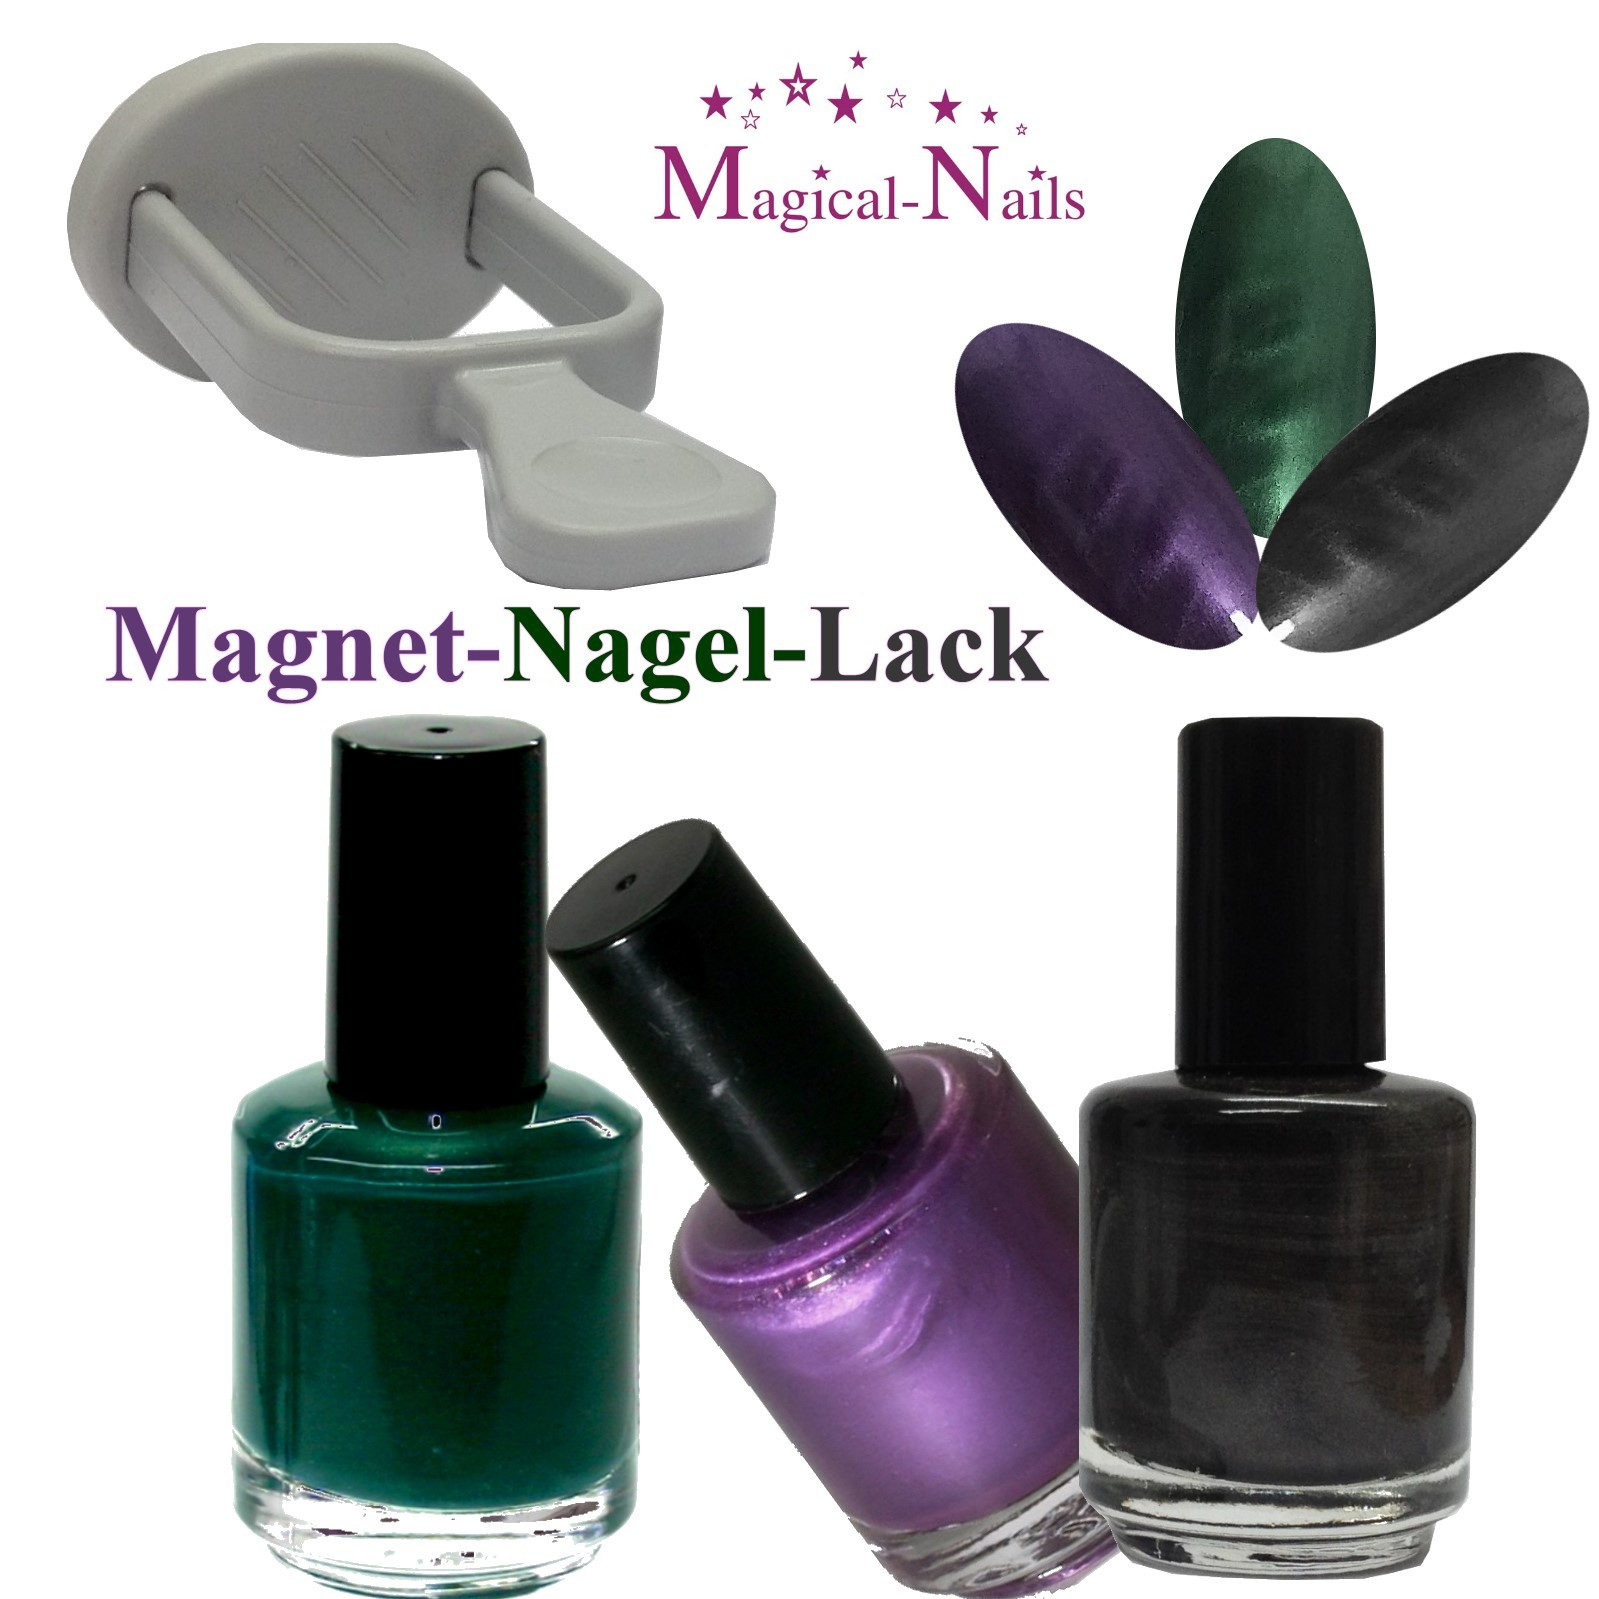 Magnet-Nagel-Lack-www.magical-nails.de-anja_beck